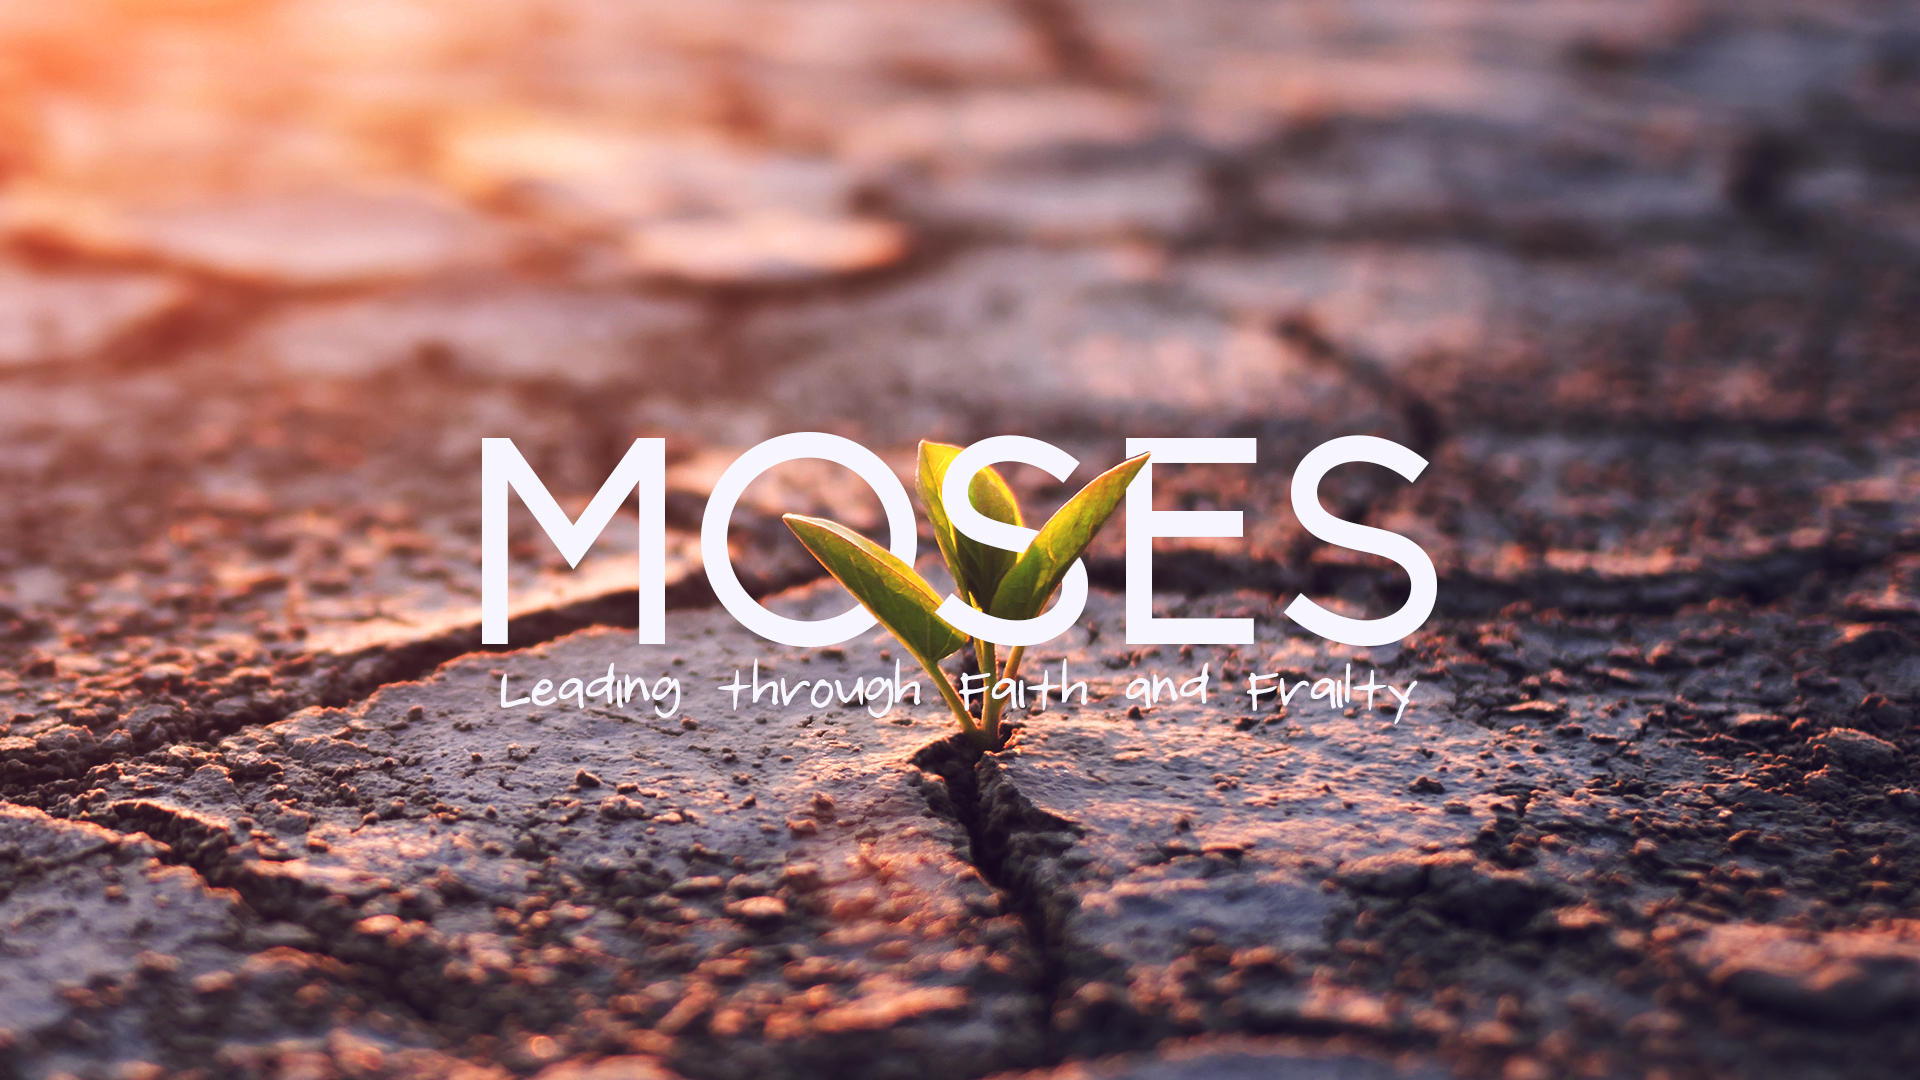 Moses-1920x1080-New.jpg